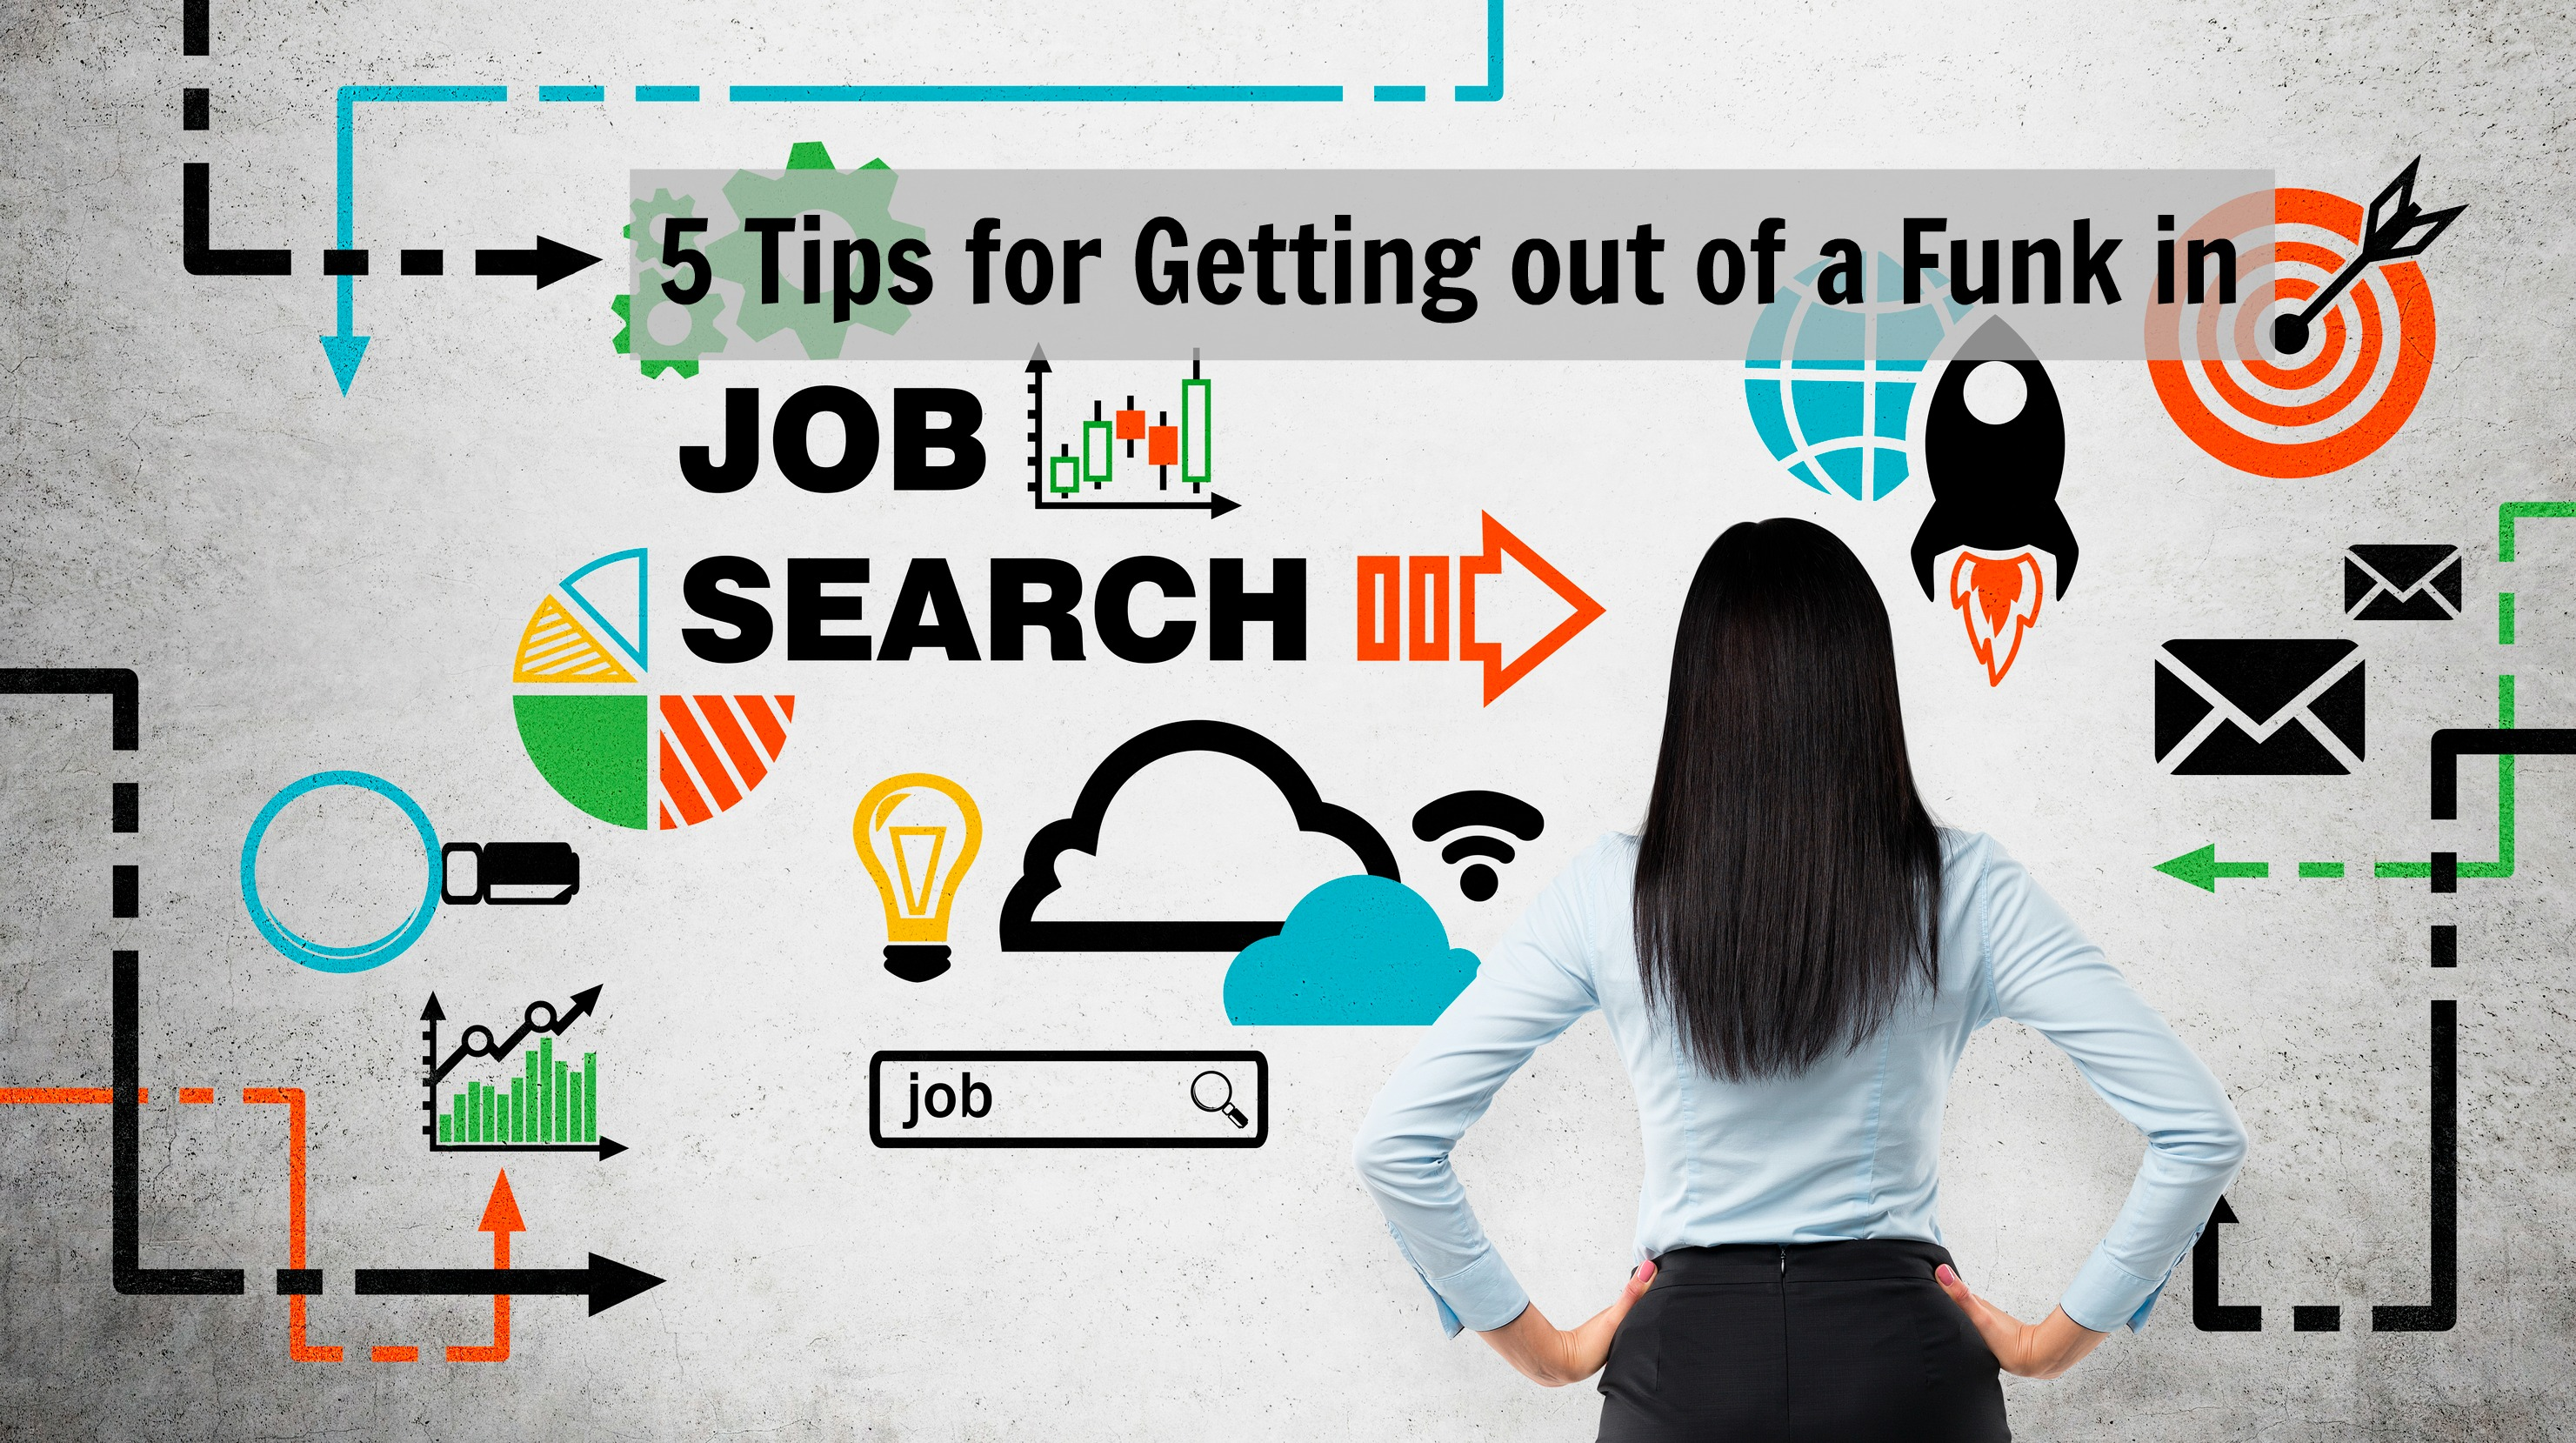 Spinning your Wheels in Job Search? 5 Tips for Getting out of a Funk